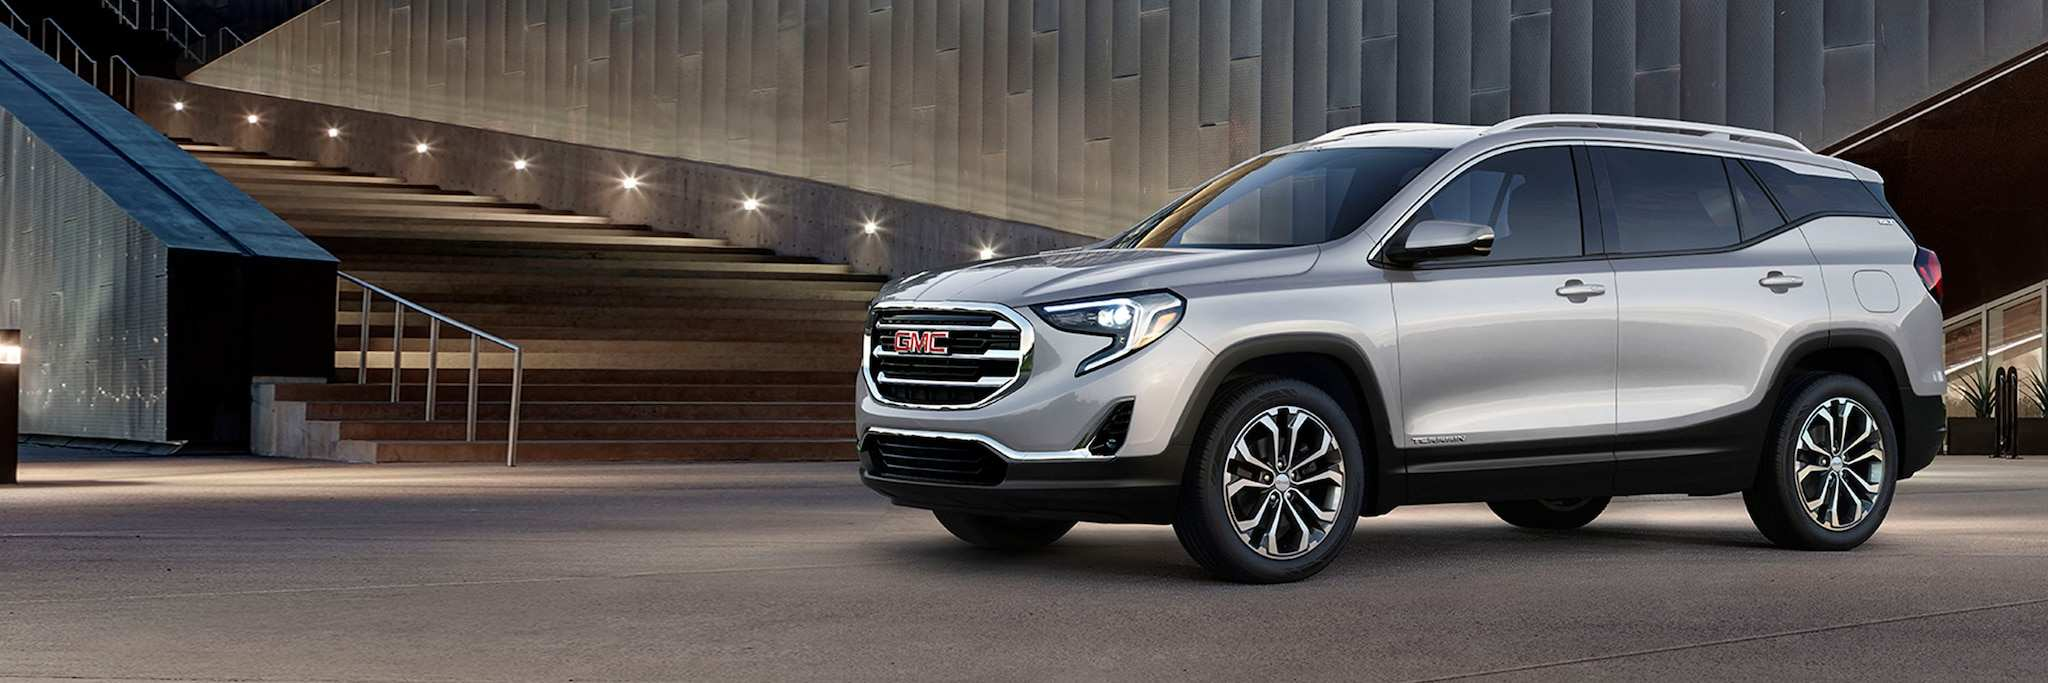 39 Concept of Gmc Terrain 2020 Performance and New Engine for Gmc Terrain 2020